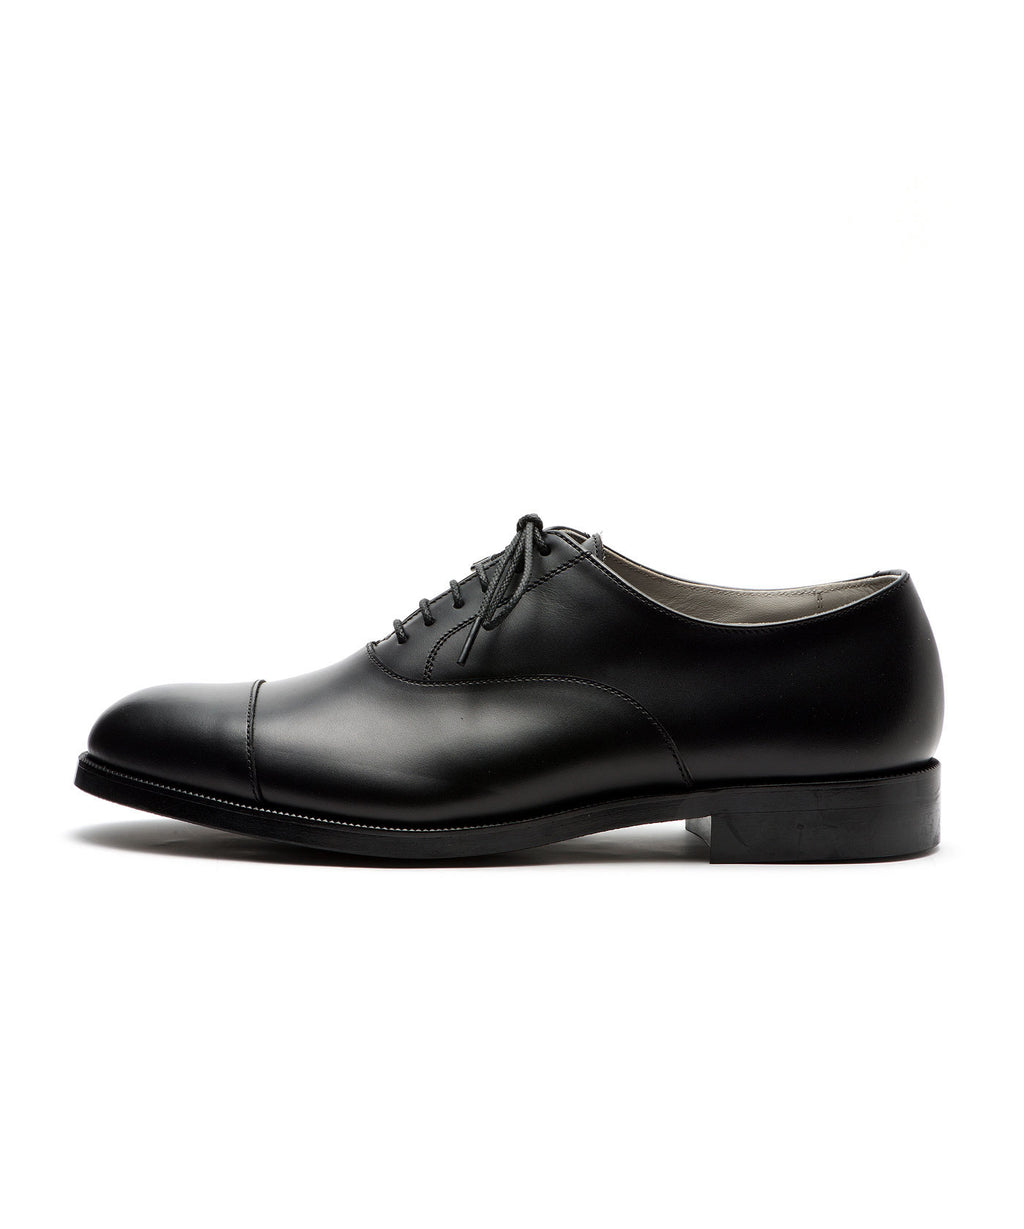 FOOTSTOCK フットストック STRAIGHT TIP SHOES BLACK 公式通販 session